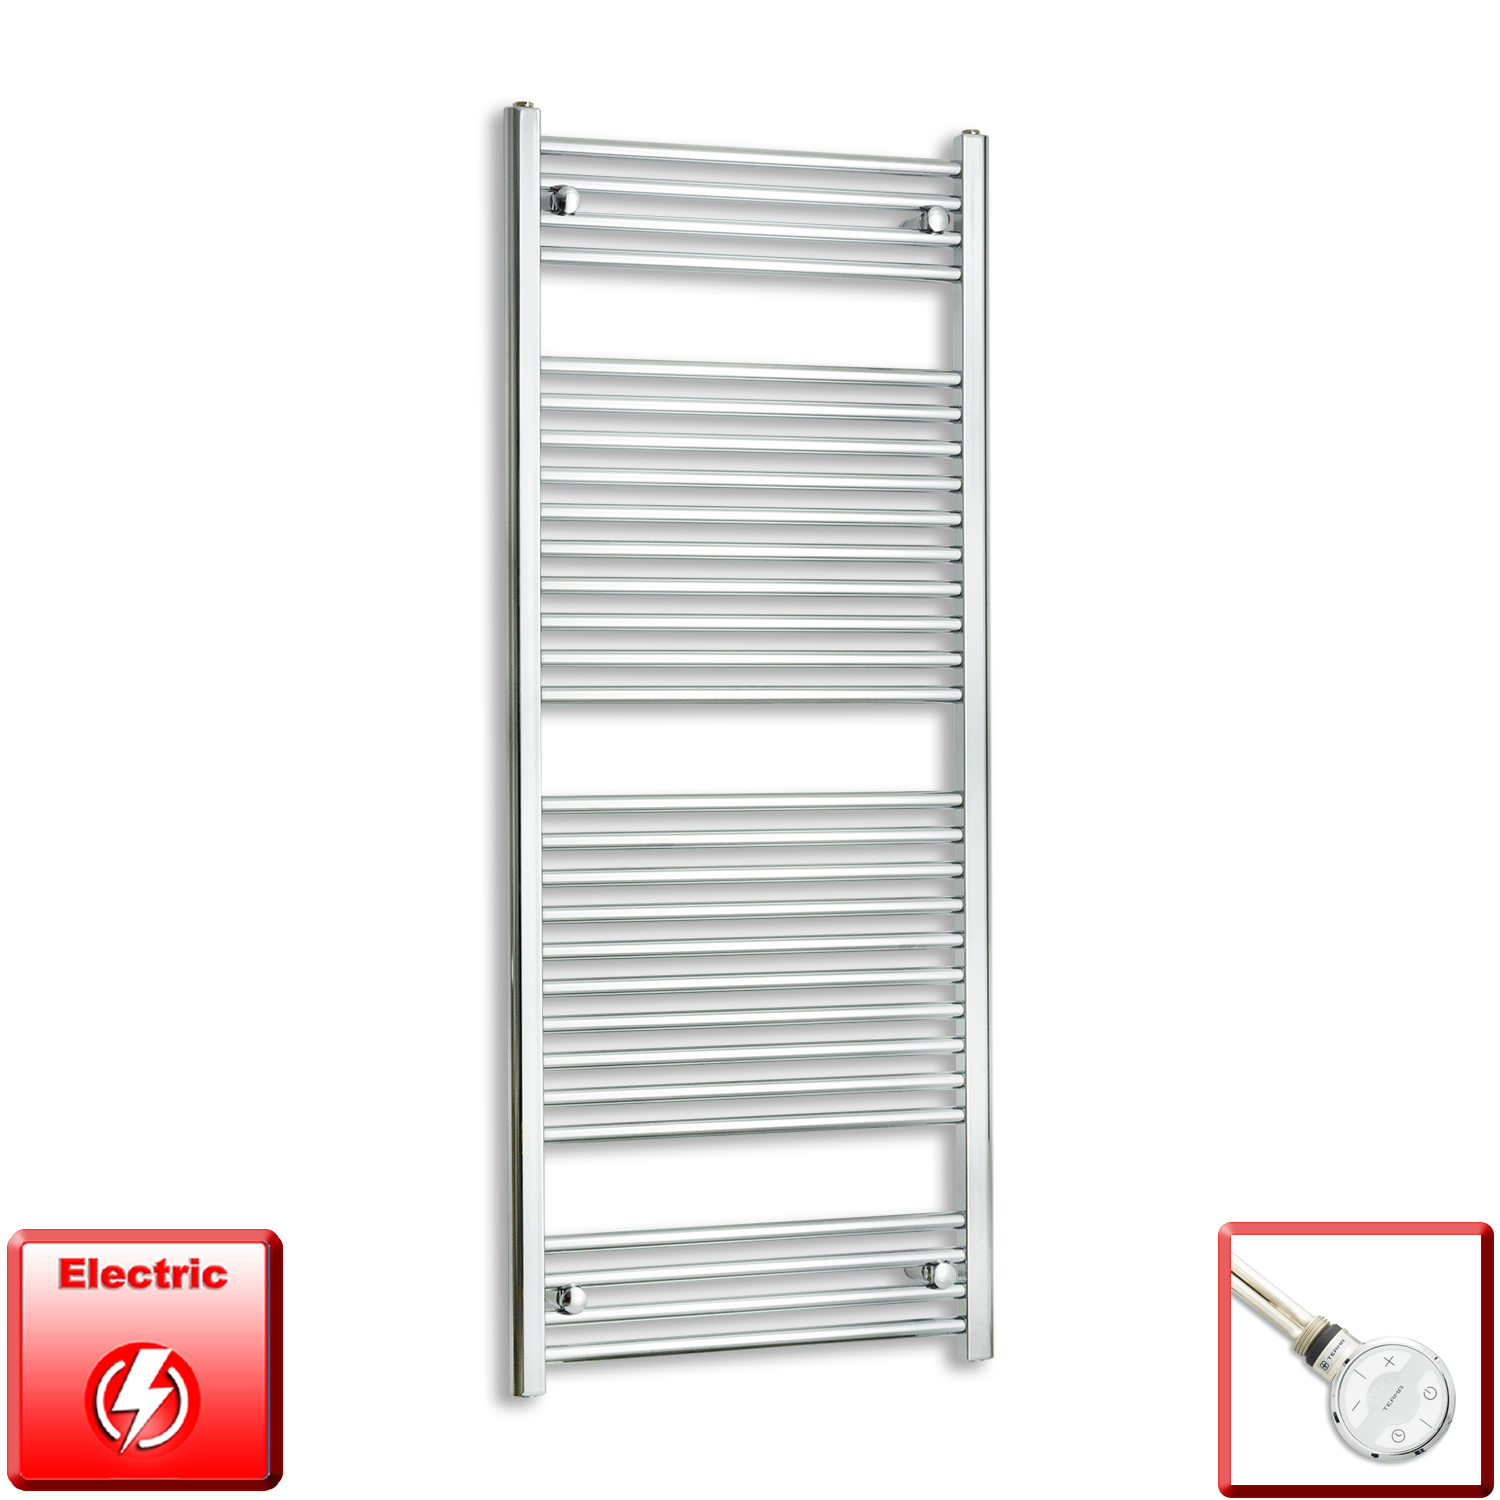 600mm Wide 1500mm High Pre-Filled Chrome Electric Towel Rail Radiator With Thermostatic MOA Element